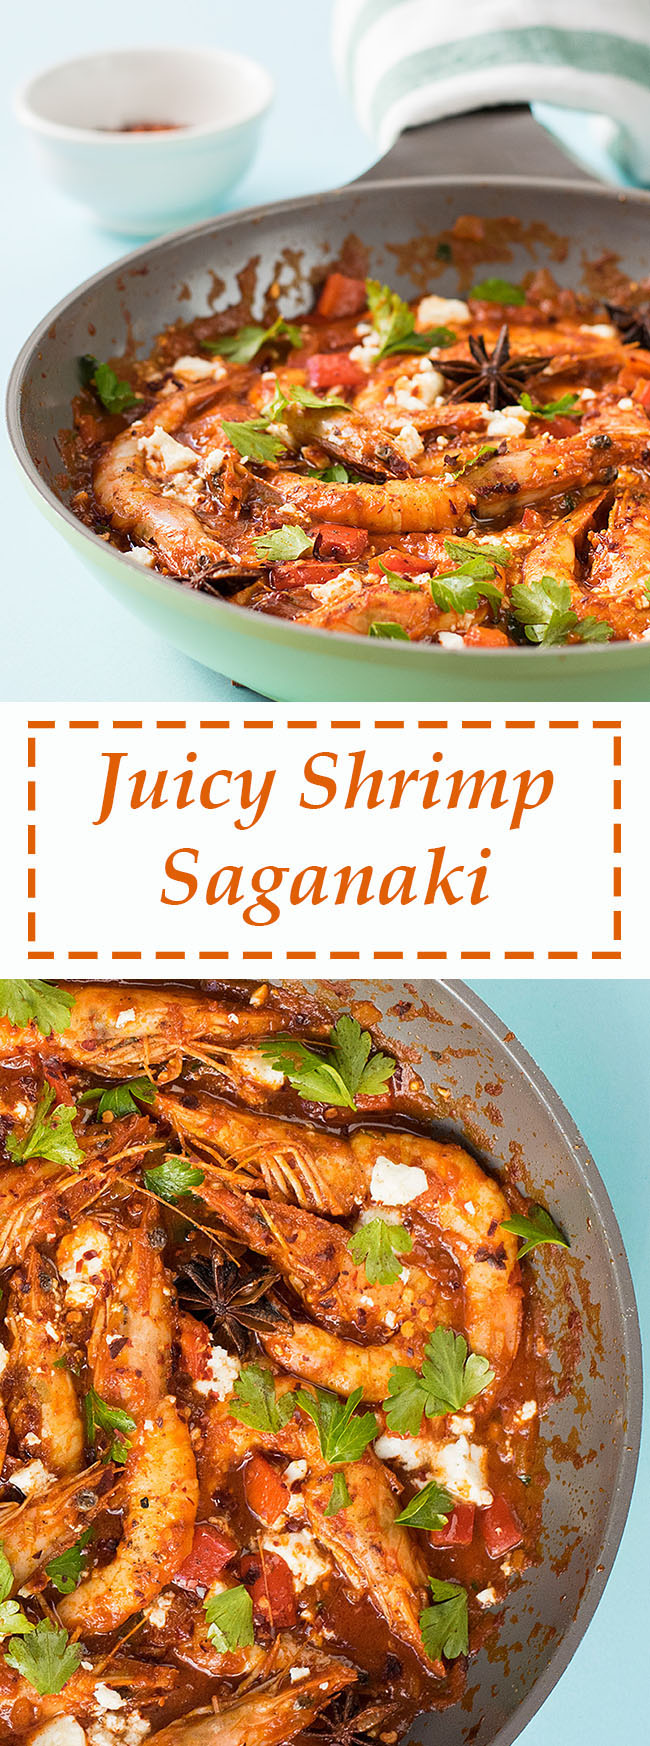 Juicy shrimp saganaki 6